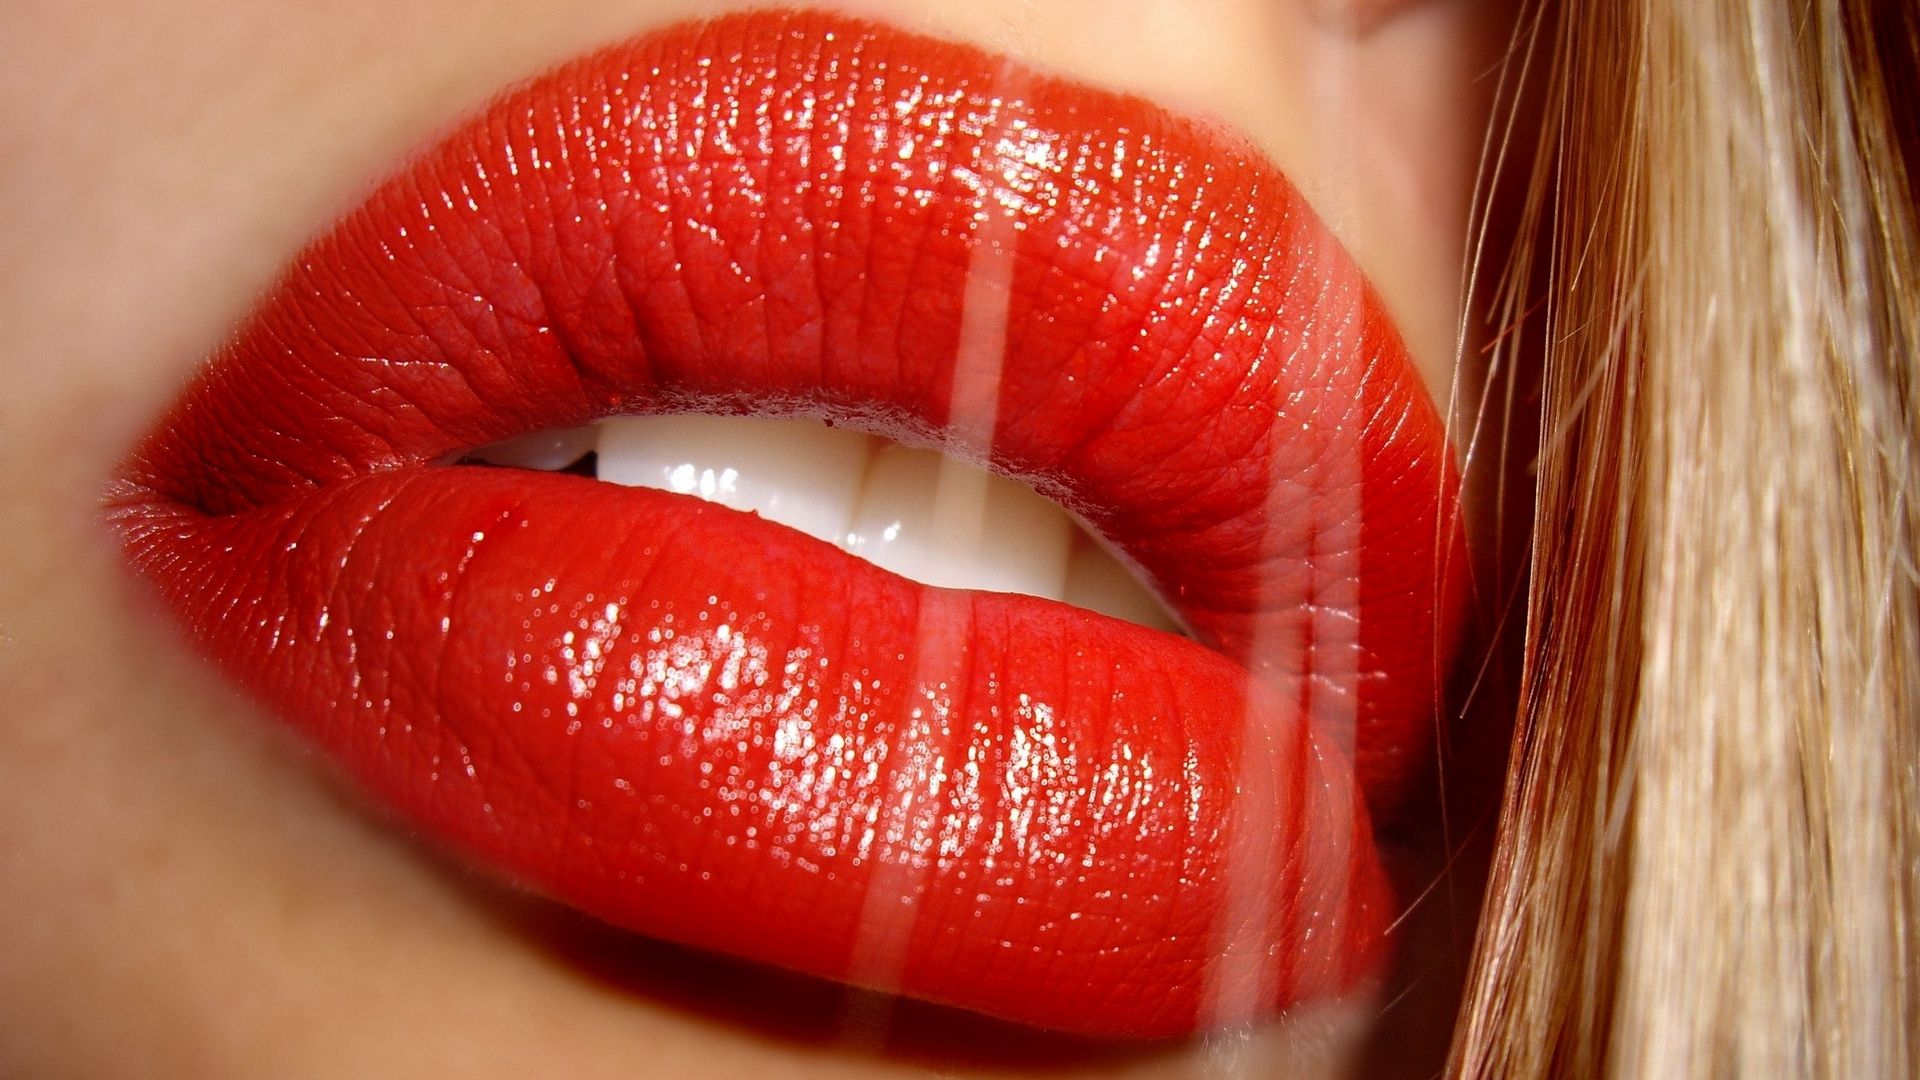 lips_teeth_red_lipstick_girl_hair_17293_1920x1080